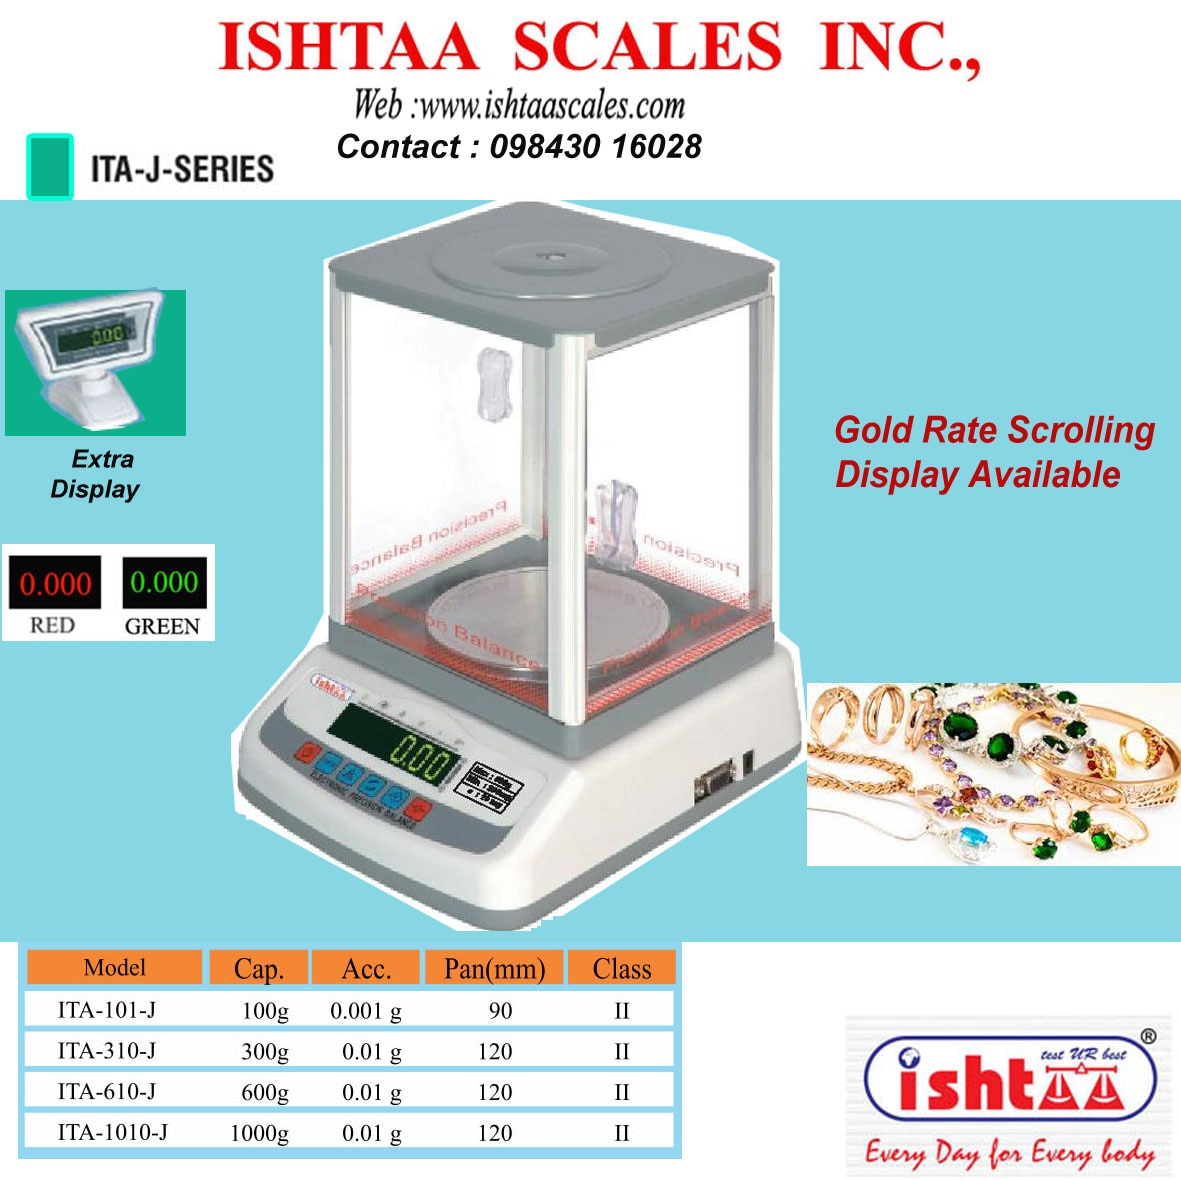 ISHTAA- ITA – J series Capacity : 600gm & 1000gm  Accuracy : 0.01g Body: ABS Display: LED 0.56mm ( Red & Green )  Features   Counting Function   Overload Alarm   High Accuracy   Extra Display   #JewelryWeighing   #GoldWeighing     #LaboratoryWeighing   #PrecisionWeighing   #GoldenWeighing   #1kgscale #Weighingscale #PawnBrokingscale #Jewel loanweighing                         #Gemstoneweighing  #Diamondweighing  #GSMCalculationweighing   #600gmWeighing  #1000gmWeighing  #10mgAccuracyWeighing   #Coimbatore  #IshtaaWeighing  #Scales  #AccurateWeighing  #AccurateScale  #Weighing